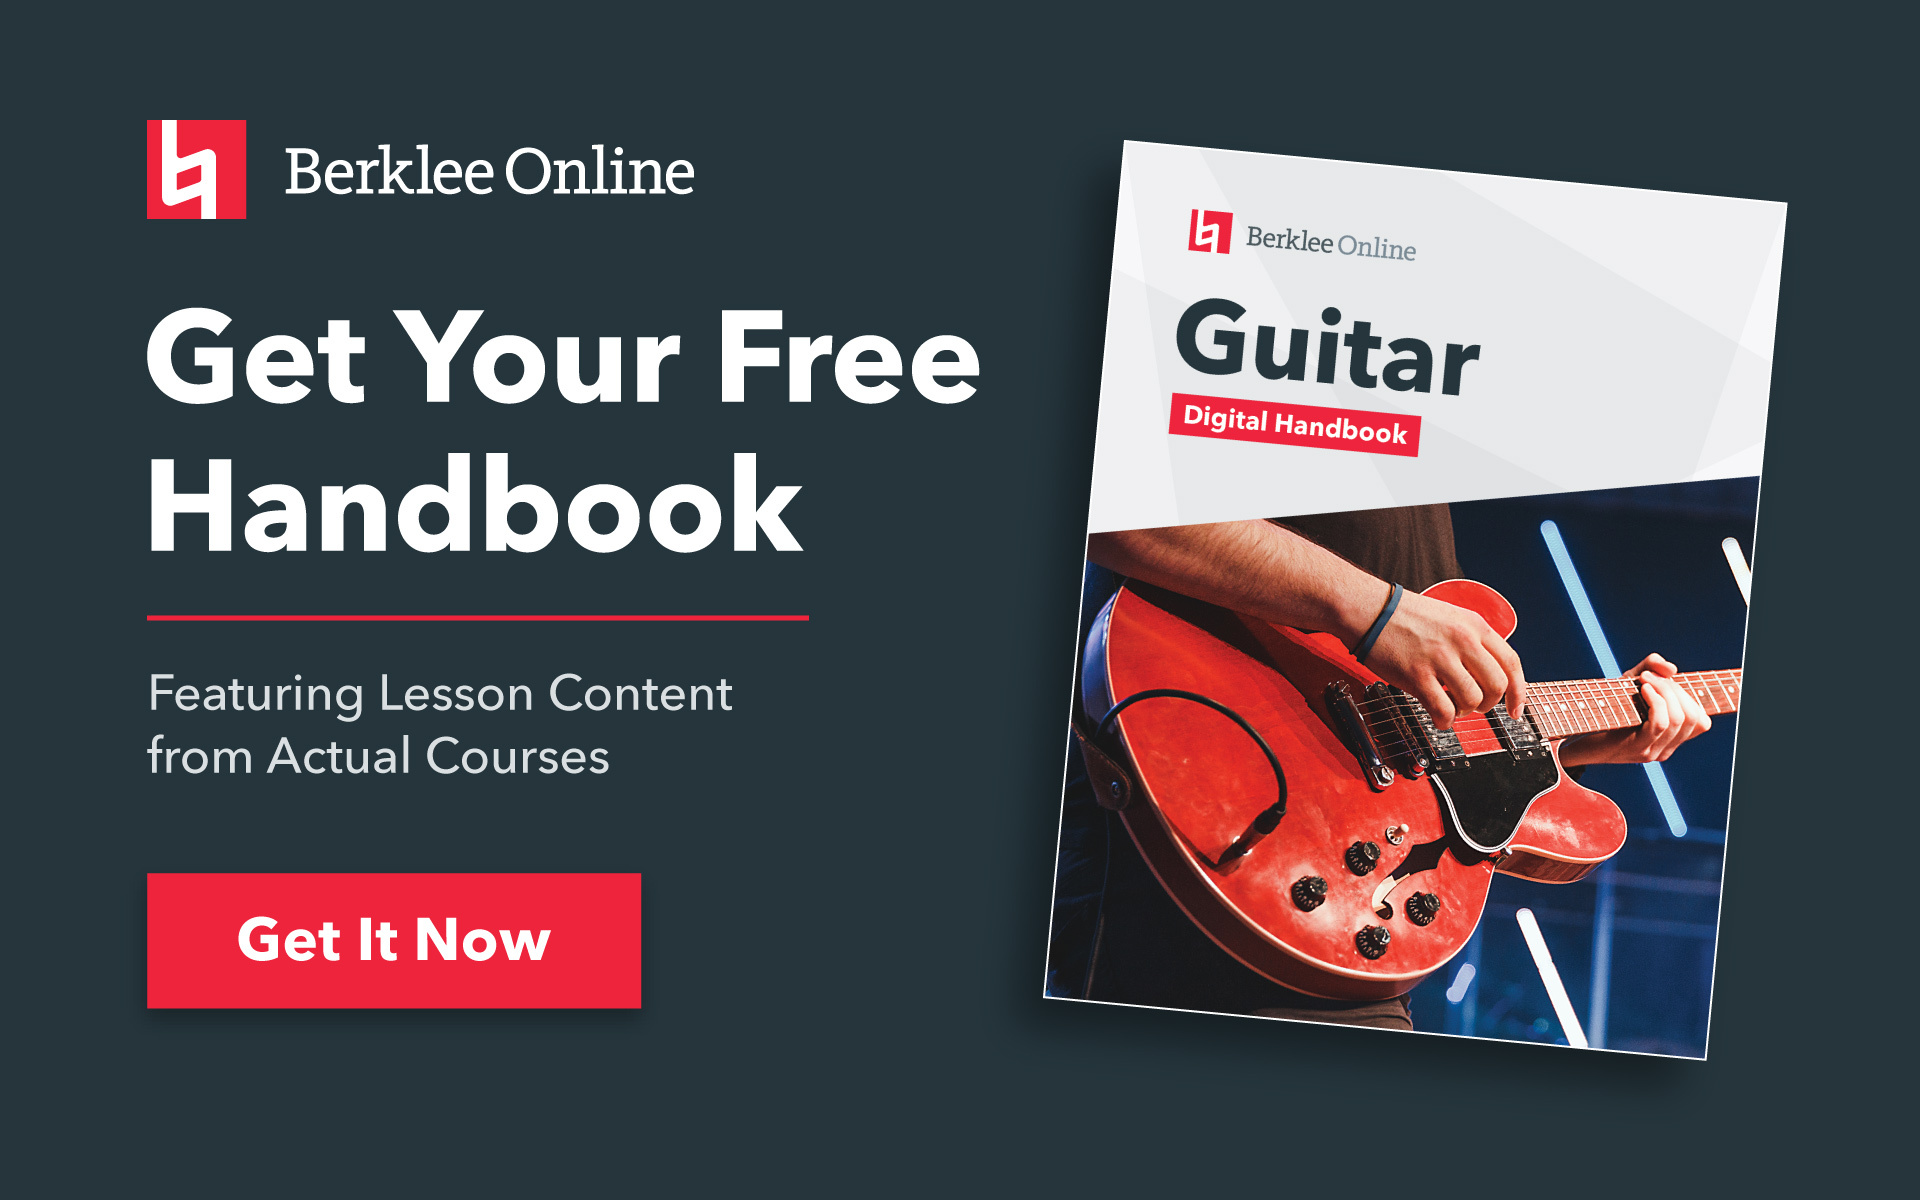 Get your free guitar handbook from Berklee Online.